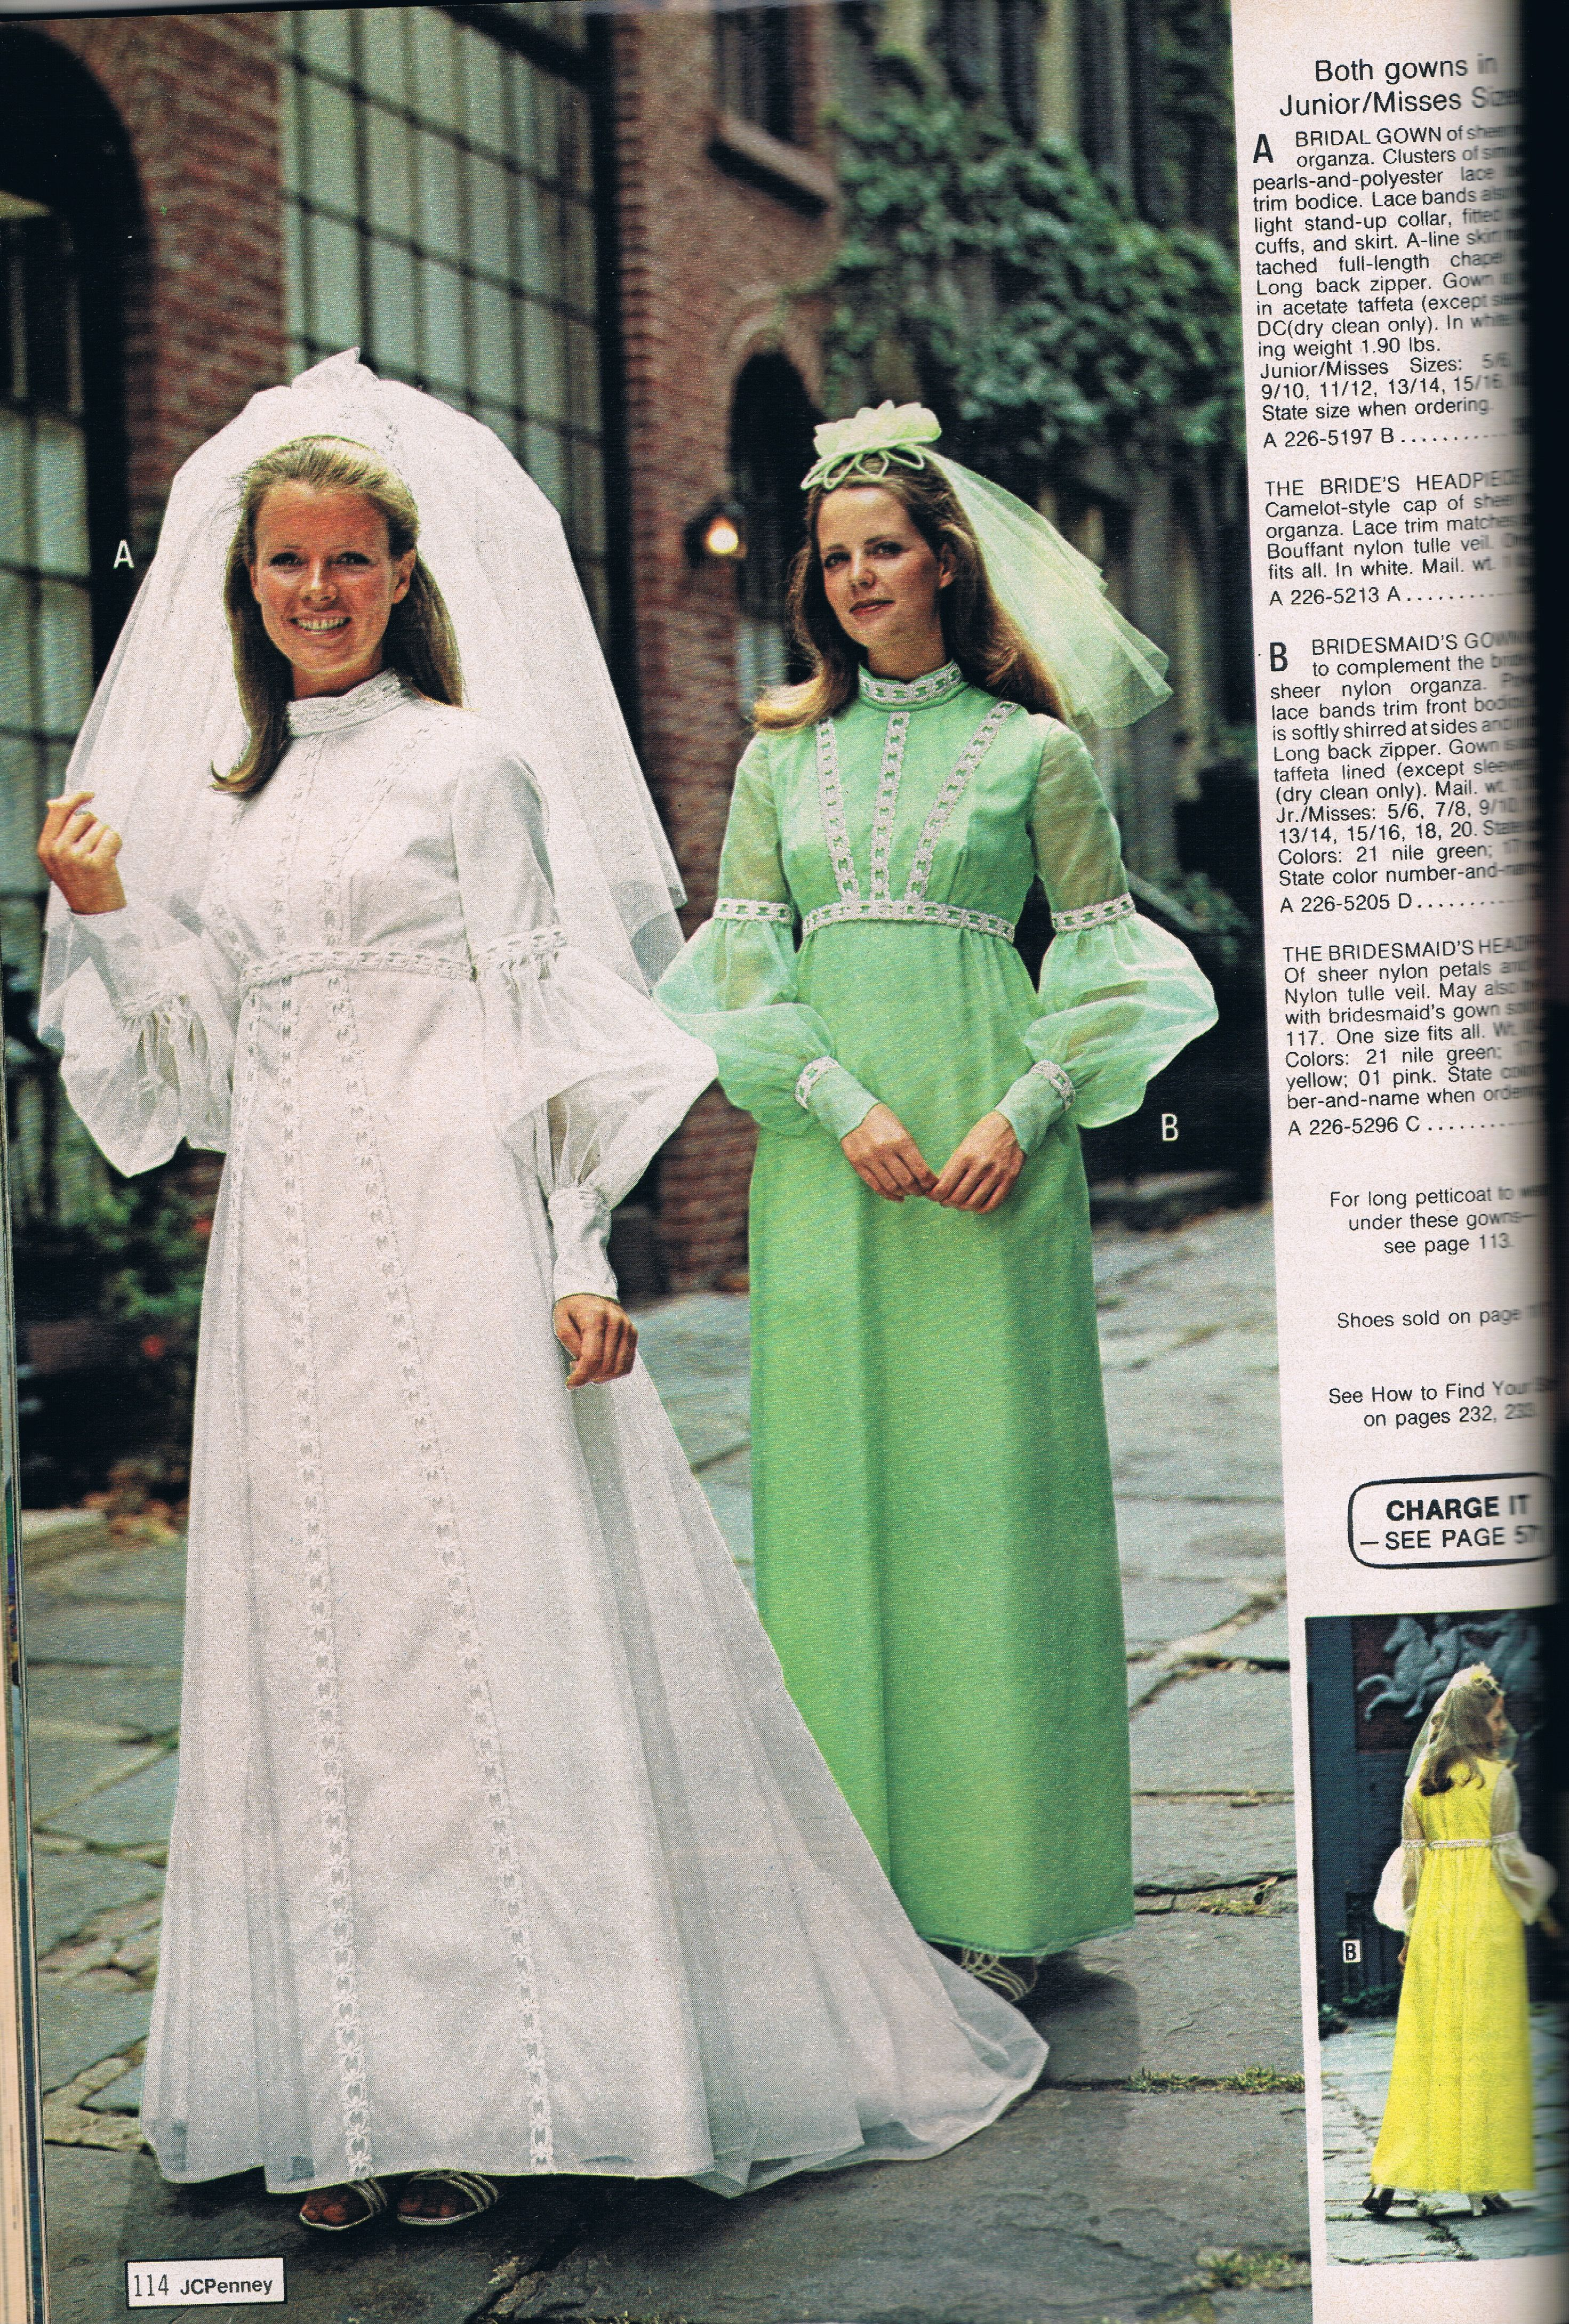 Penneys Catalog 1973 1970s Weddingvintage